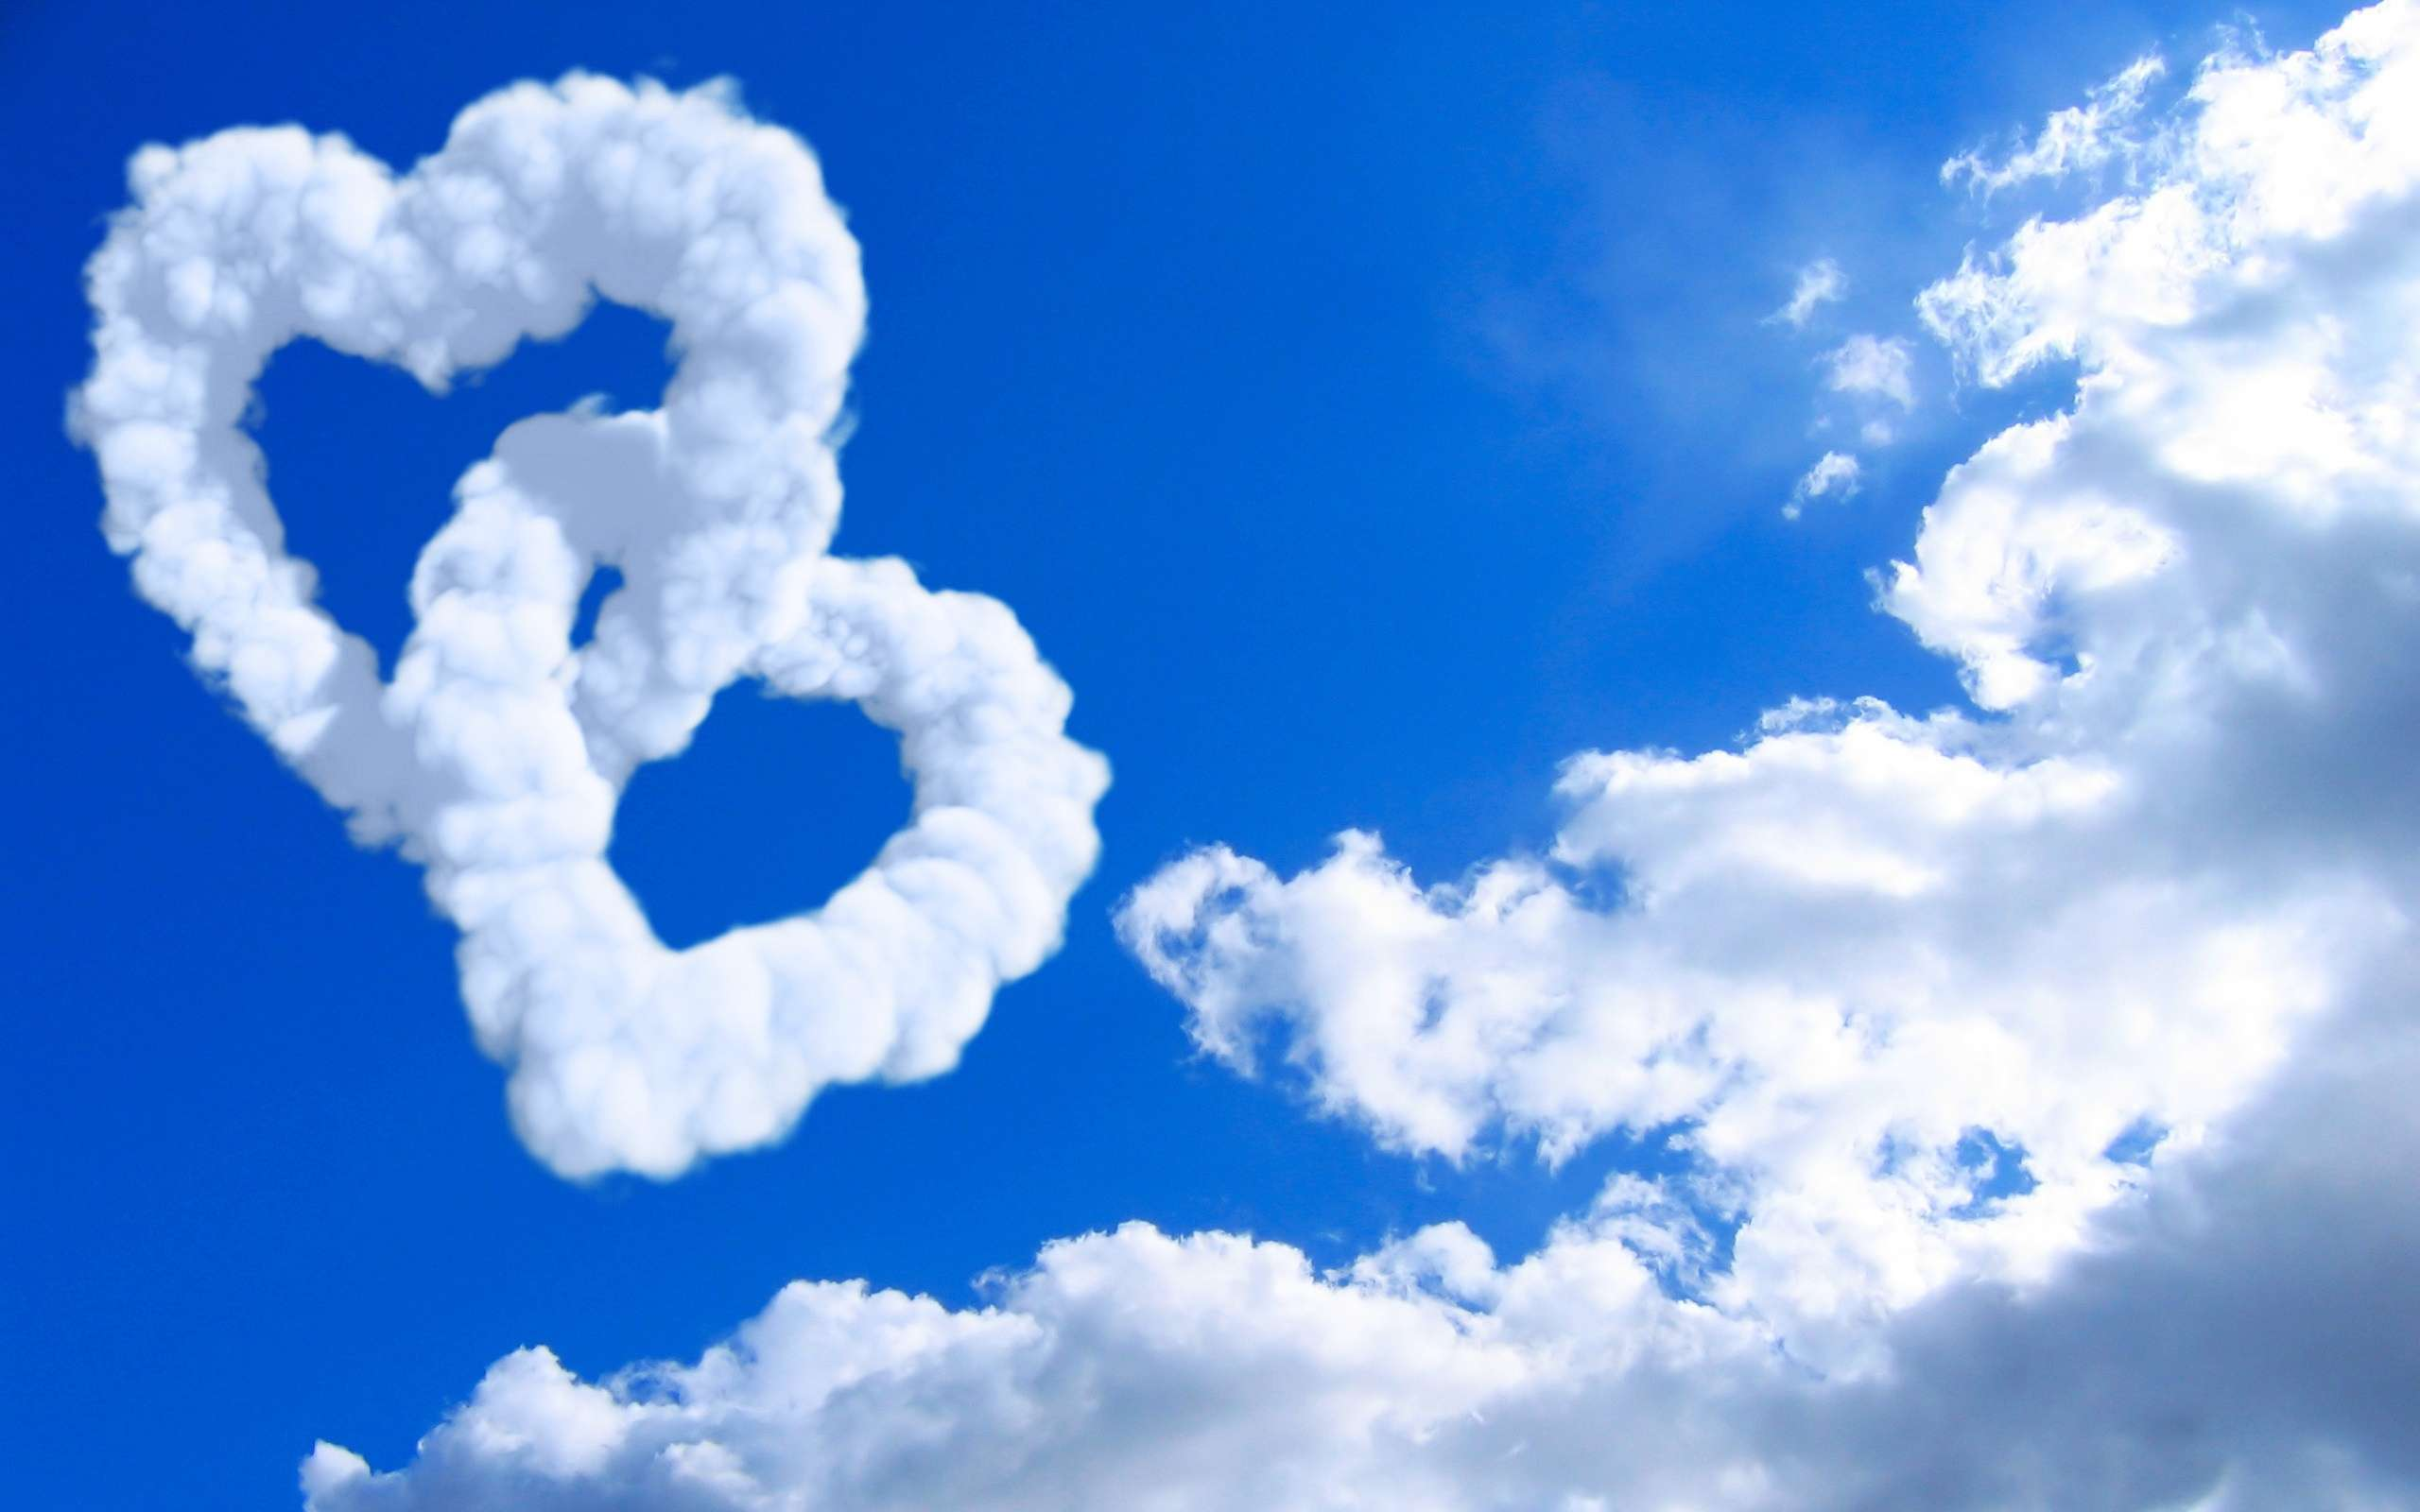 Awesome-Hearts-in-clouds-wallpaper-wp4603914-1